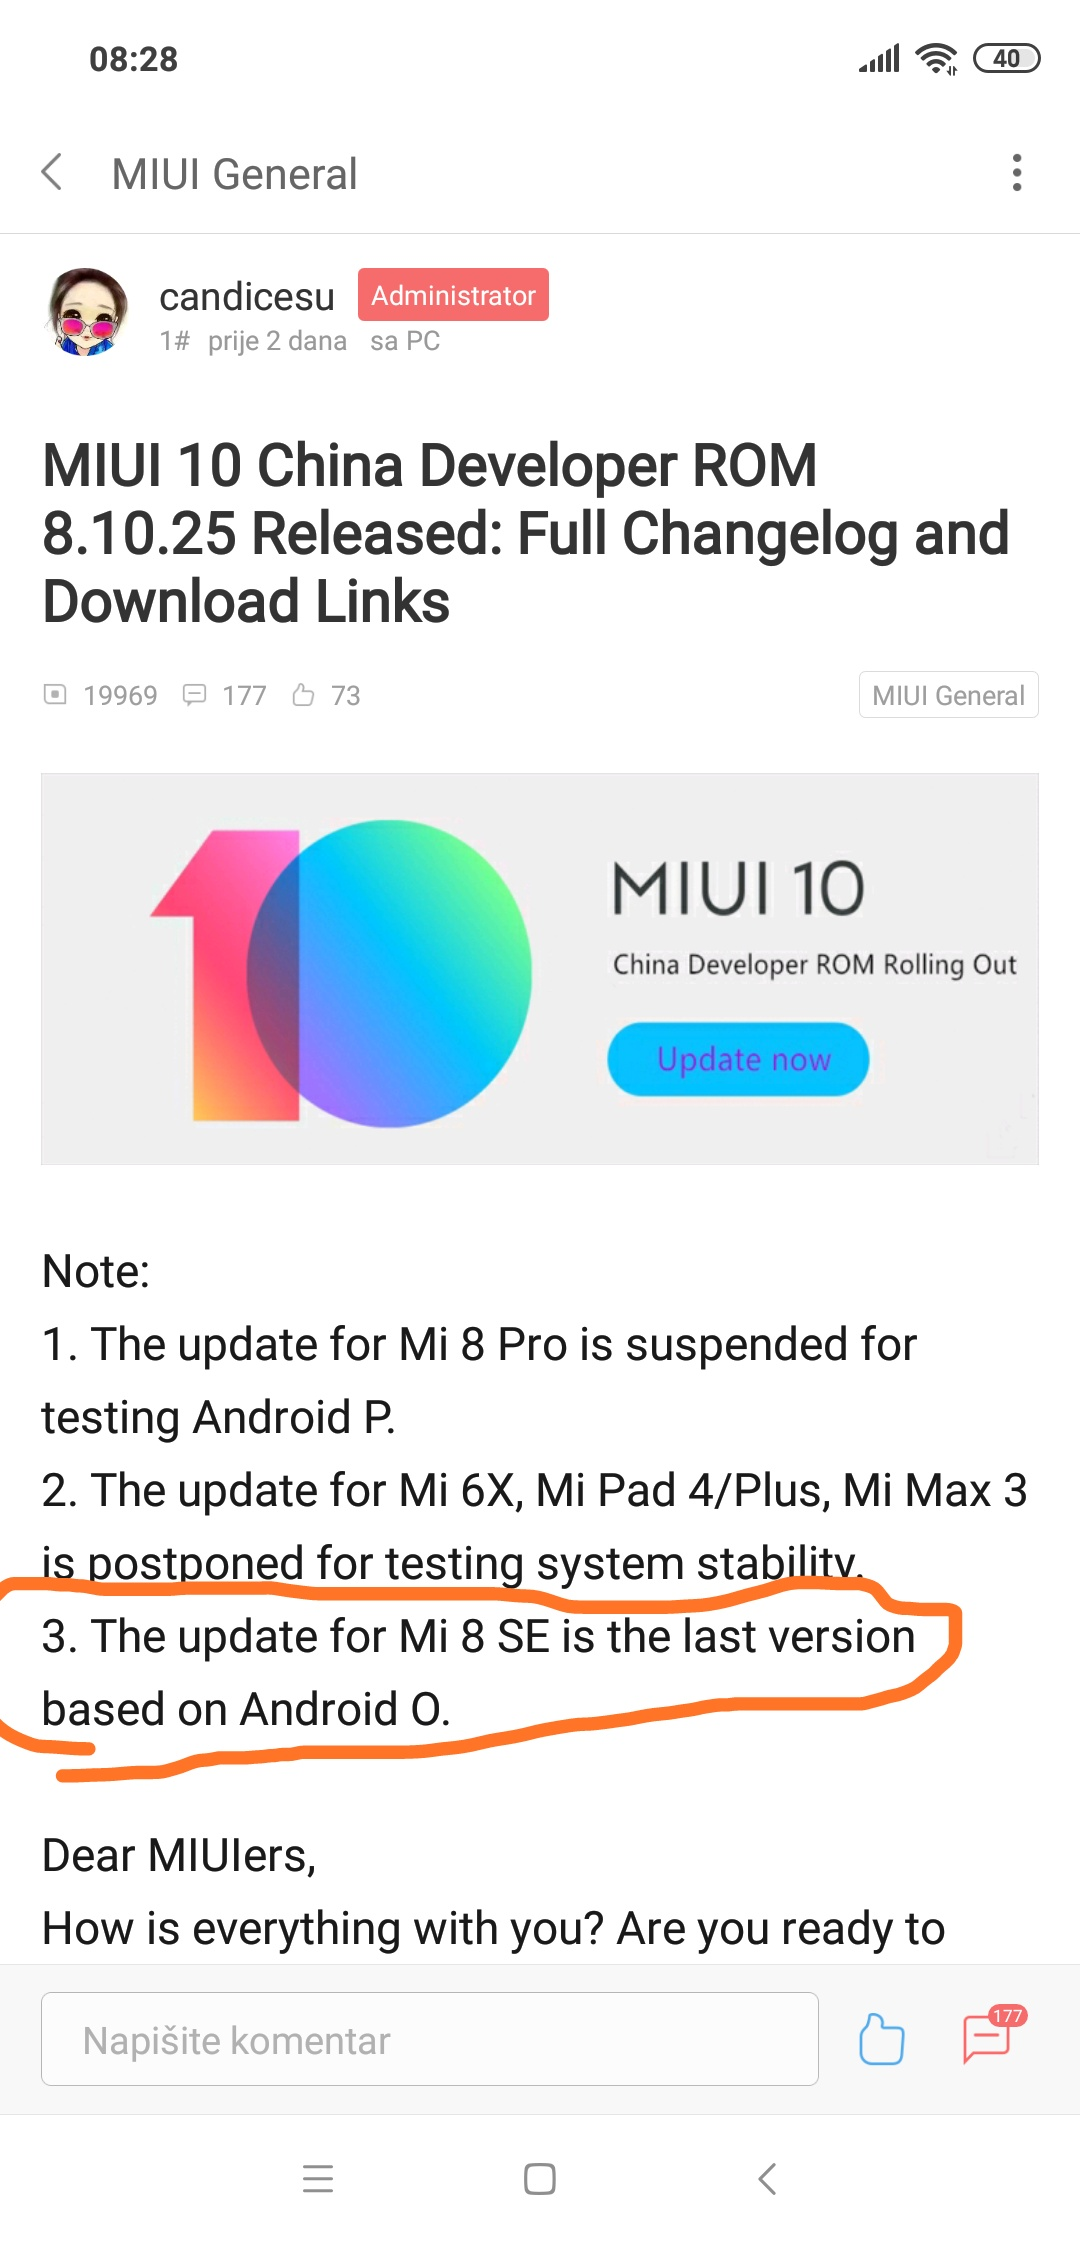 Screenshot_2018-10-28-08-28-42-124_com.miui.enbbs.jpg